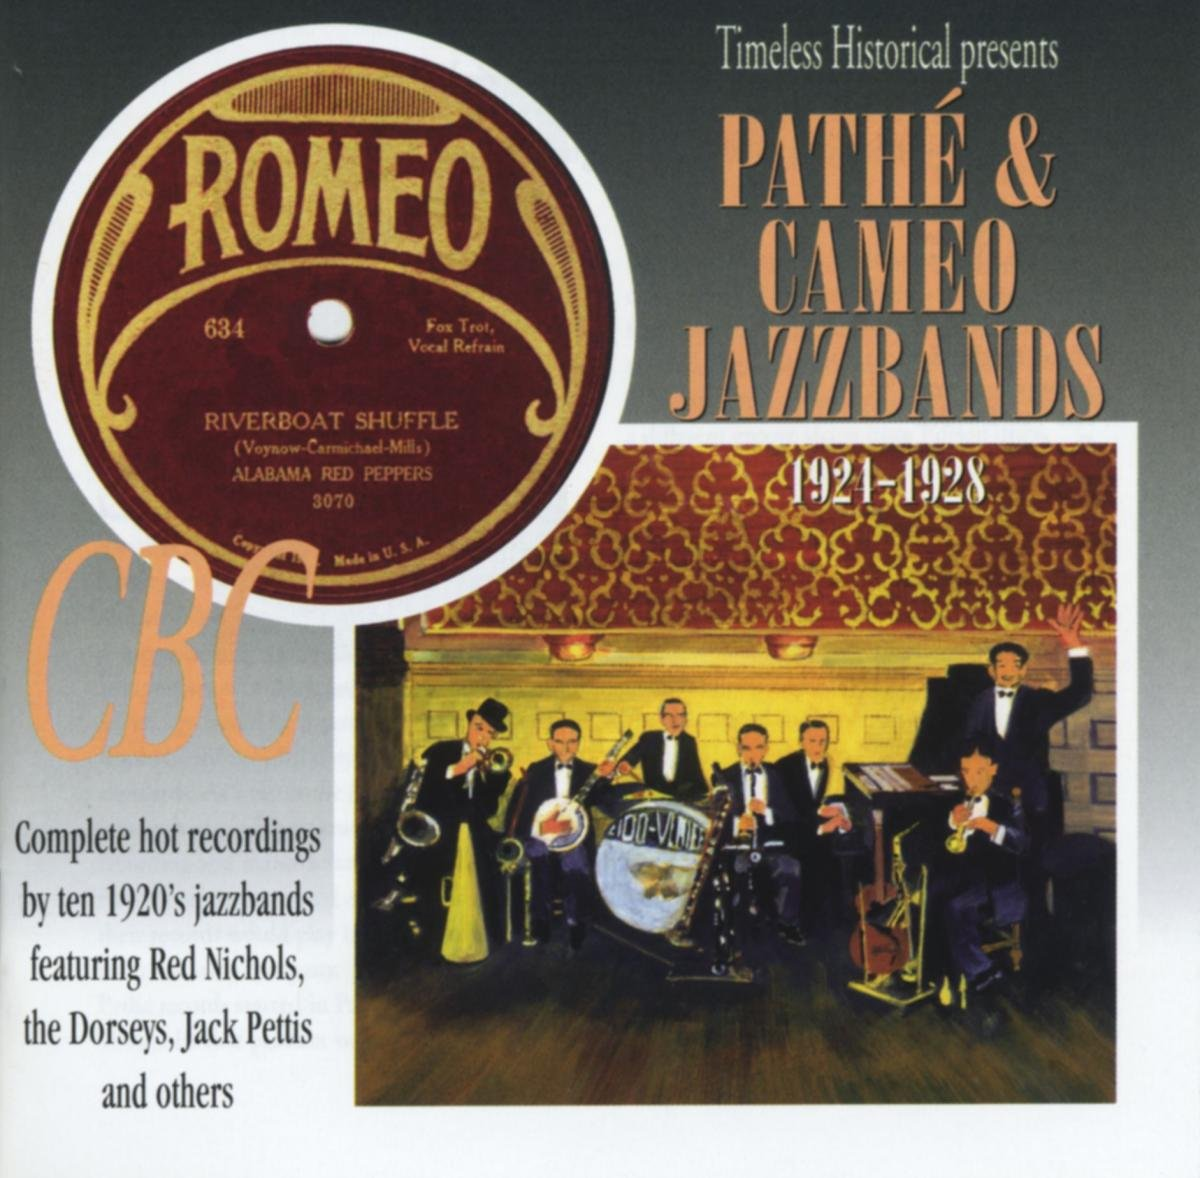 Pathe and Cameo Jazzbands 1921-1928 by Timeless -City Hall-